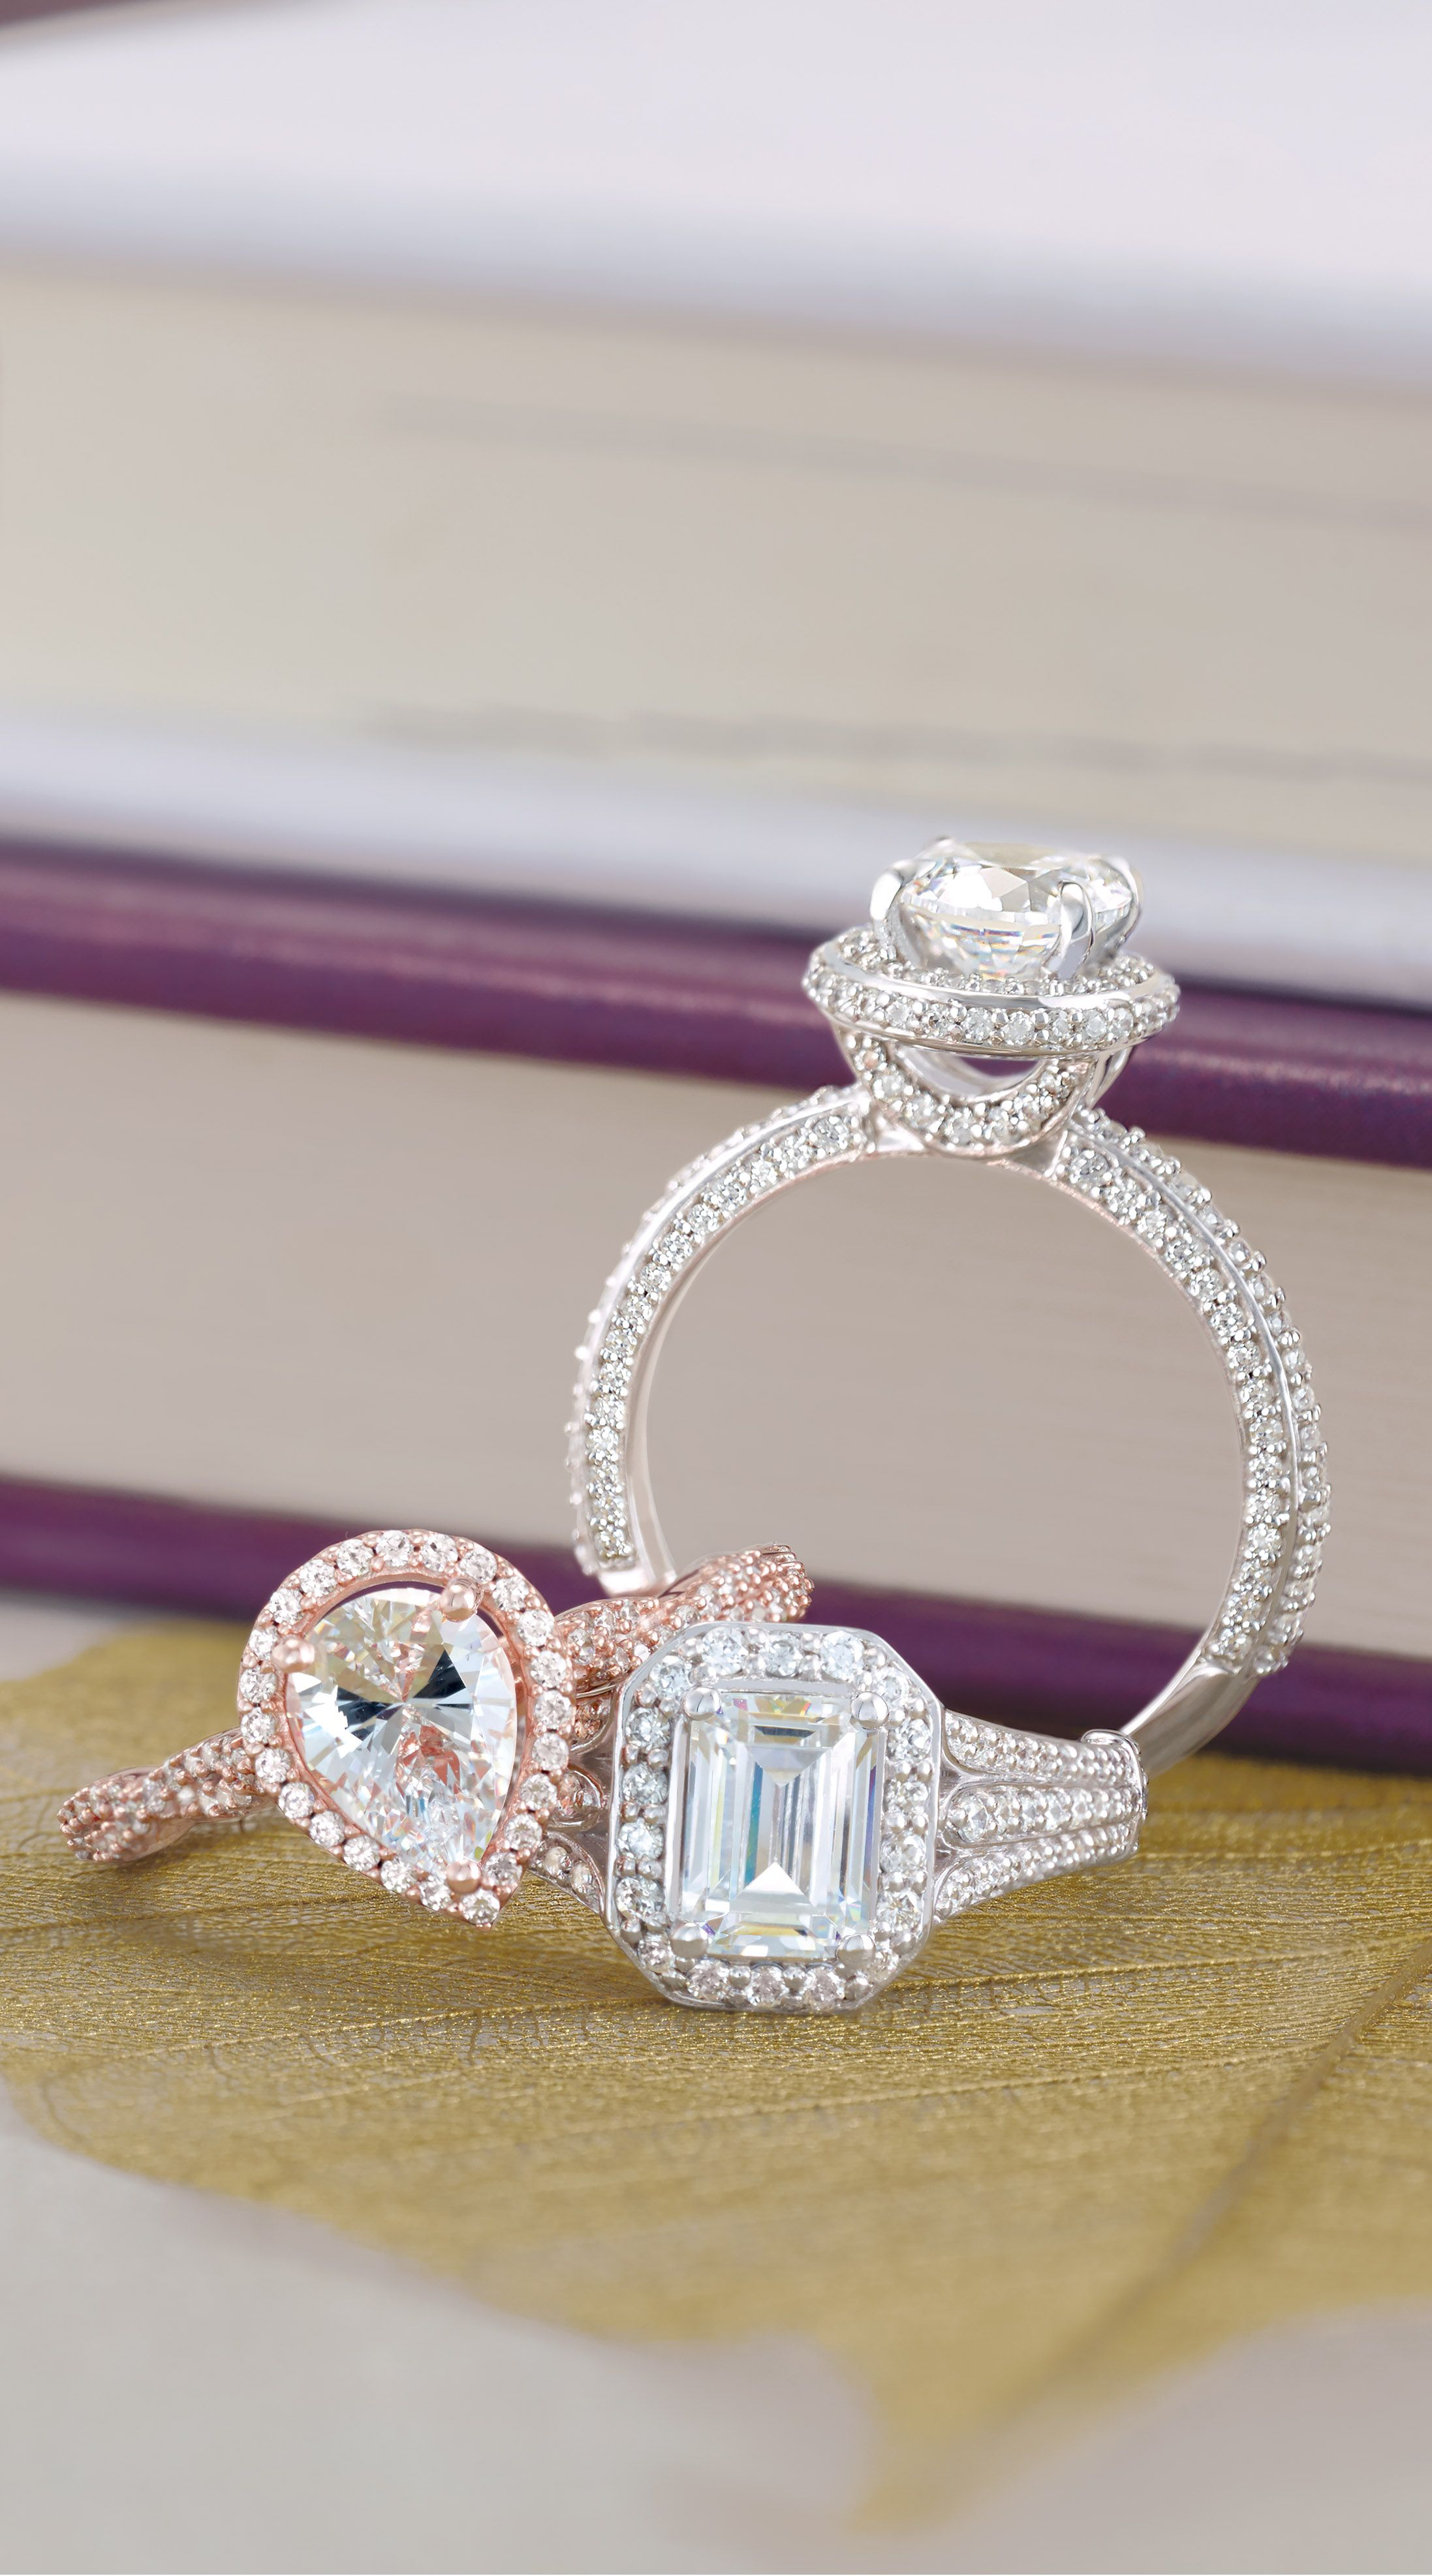 Find A Ring That Tells You Story Ever Ever Shop Engagement Rings Engagement Ring Styles Wedding Ring Shopping